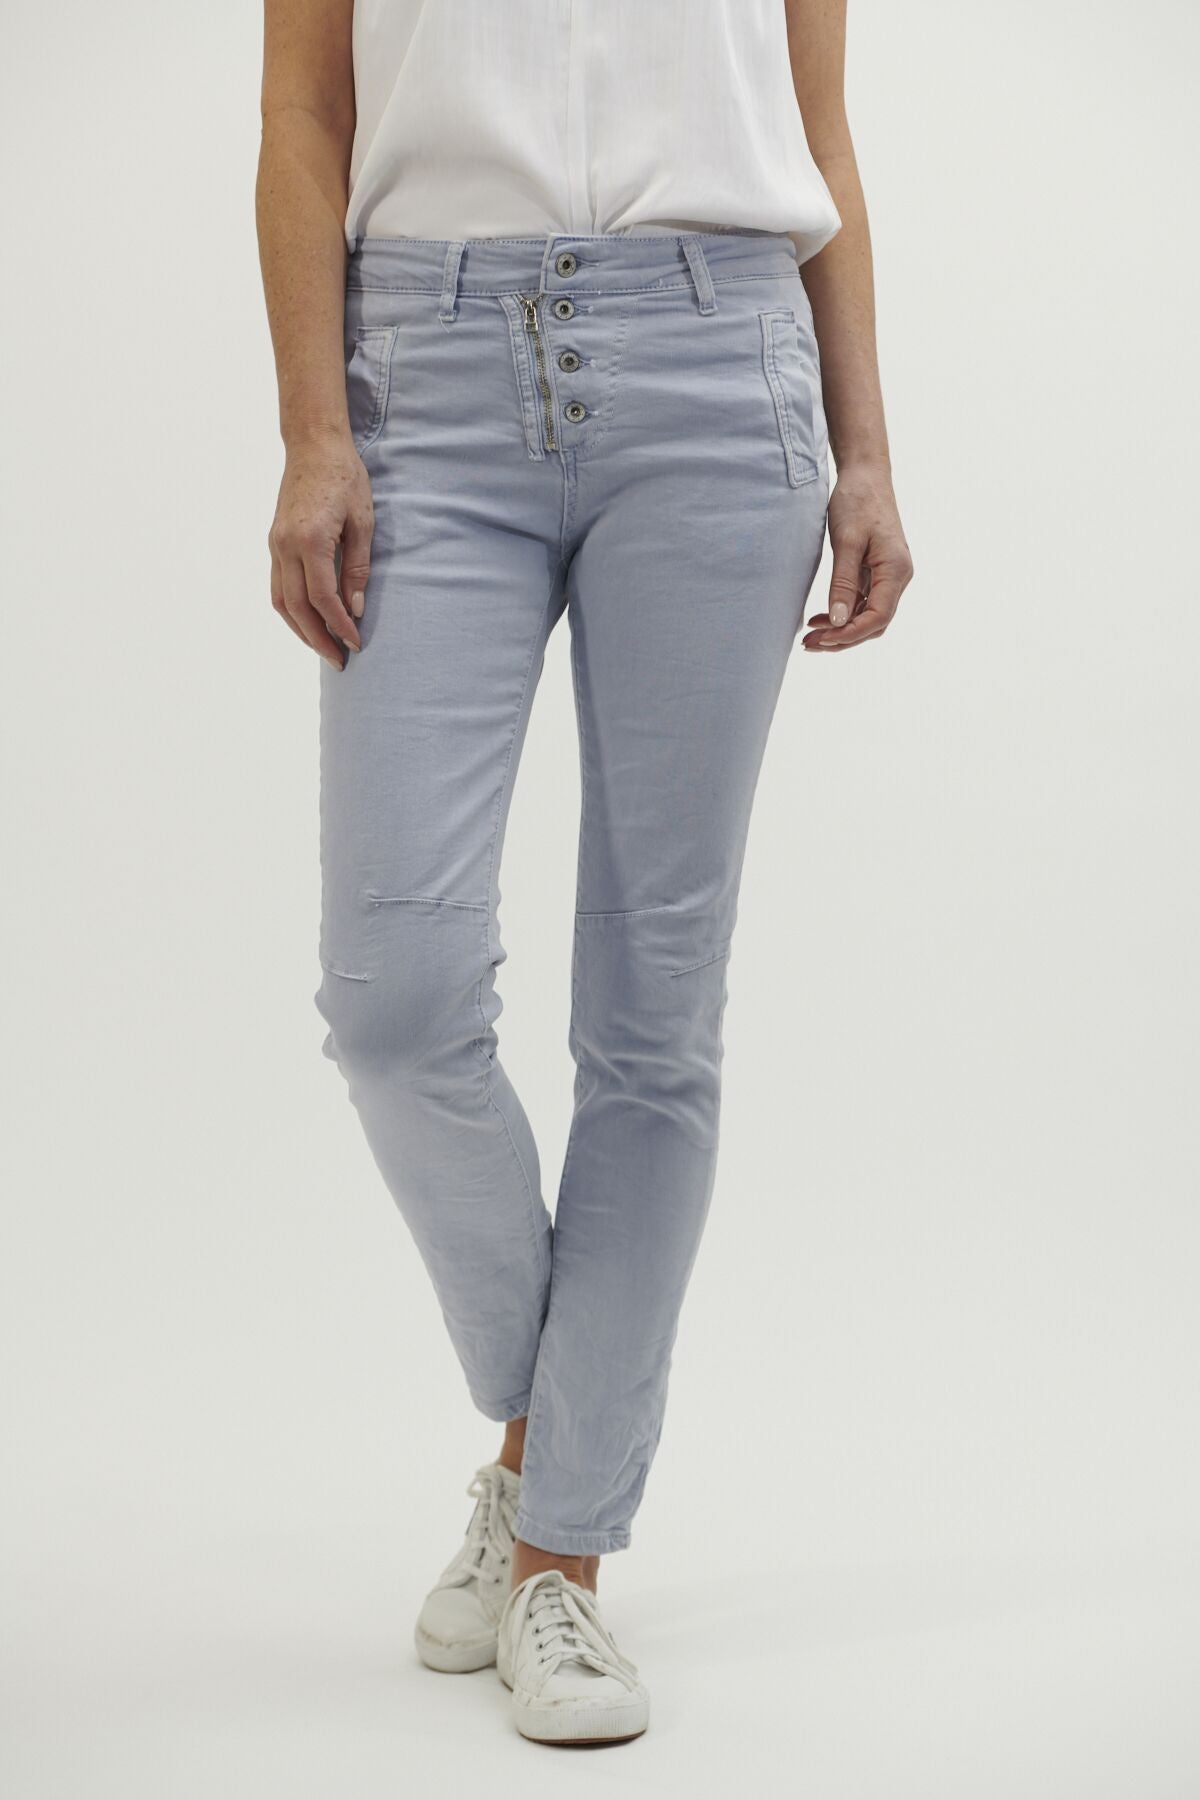 ITALIAN STAR - Button Jeans Ice Blue